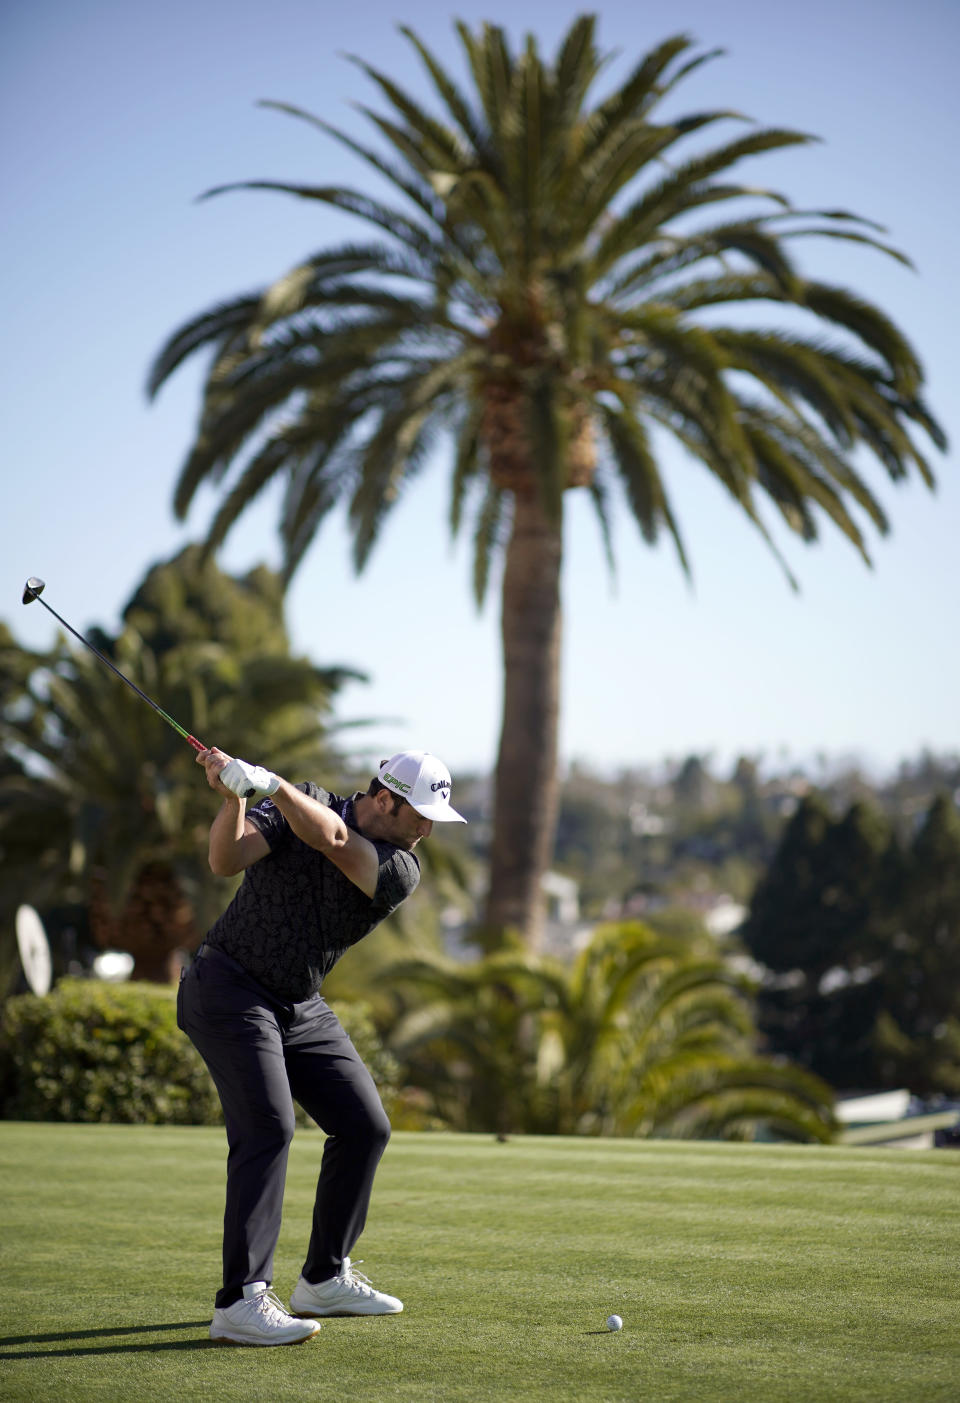 Jon Rahm tees off on the first hole during the third round of the Genesis Invitational golf tournament at Riviera Country Club, Saturday, Feb. 20, 2021, in the Pacific Palisades area of Los Angeles. (AP Photo/Ryan Kang)